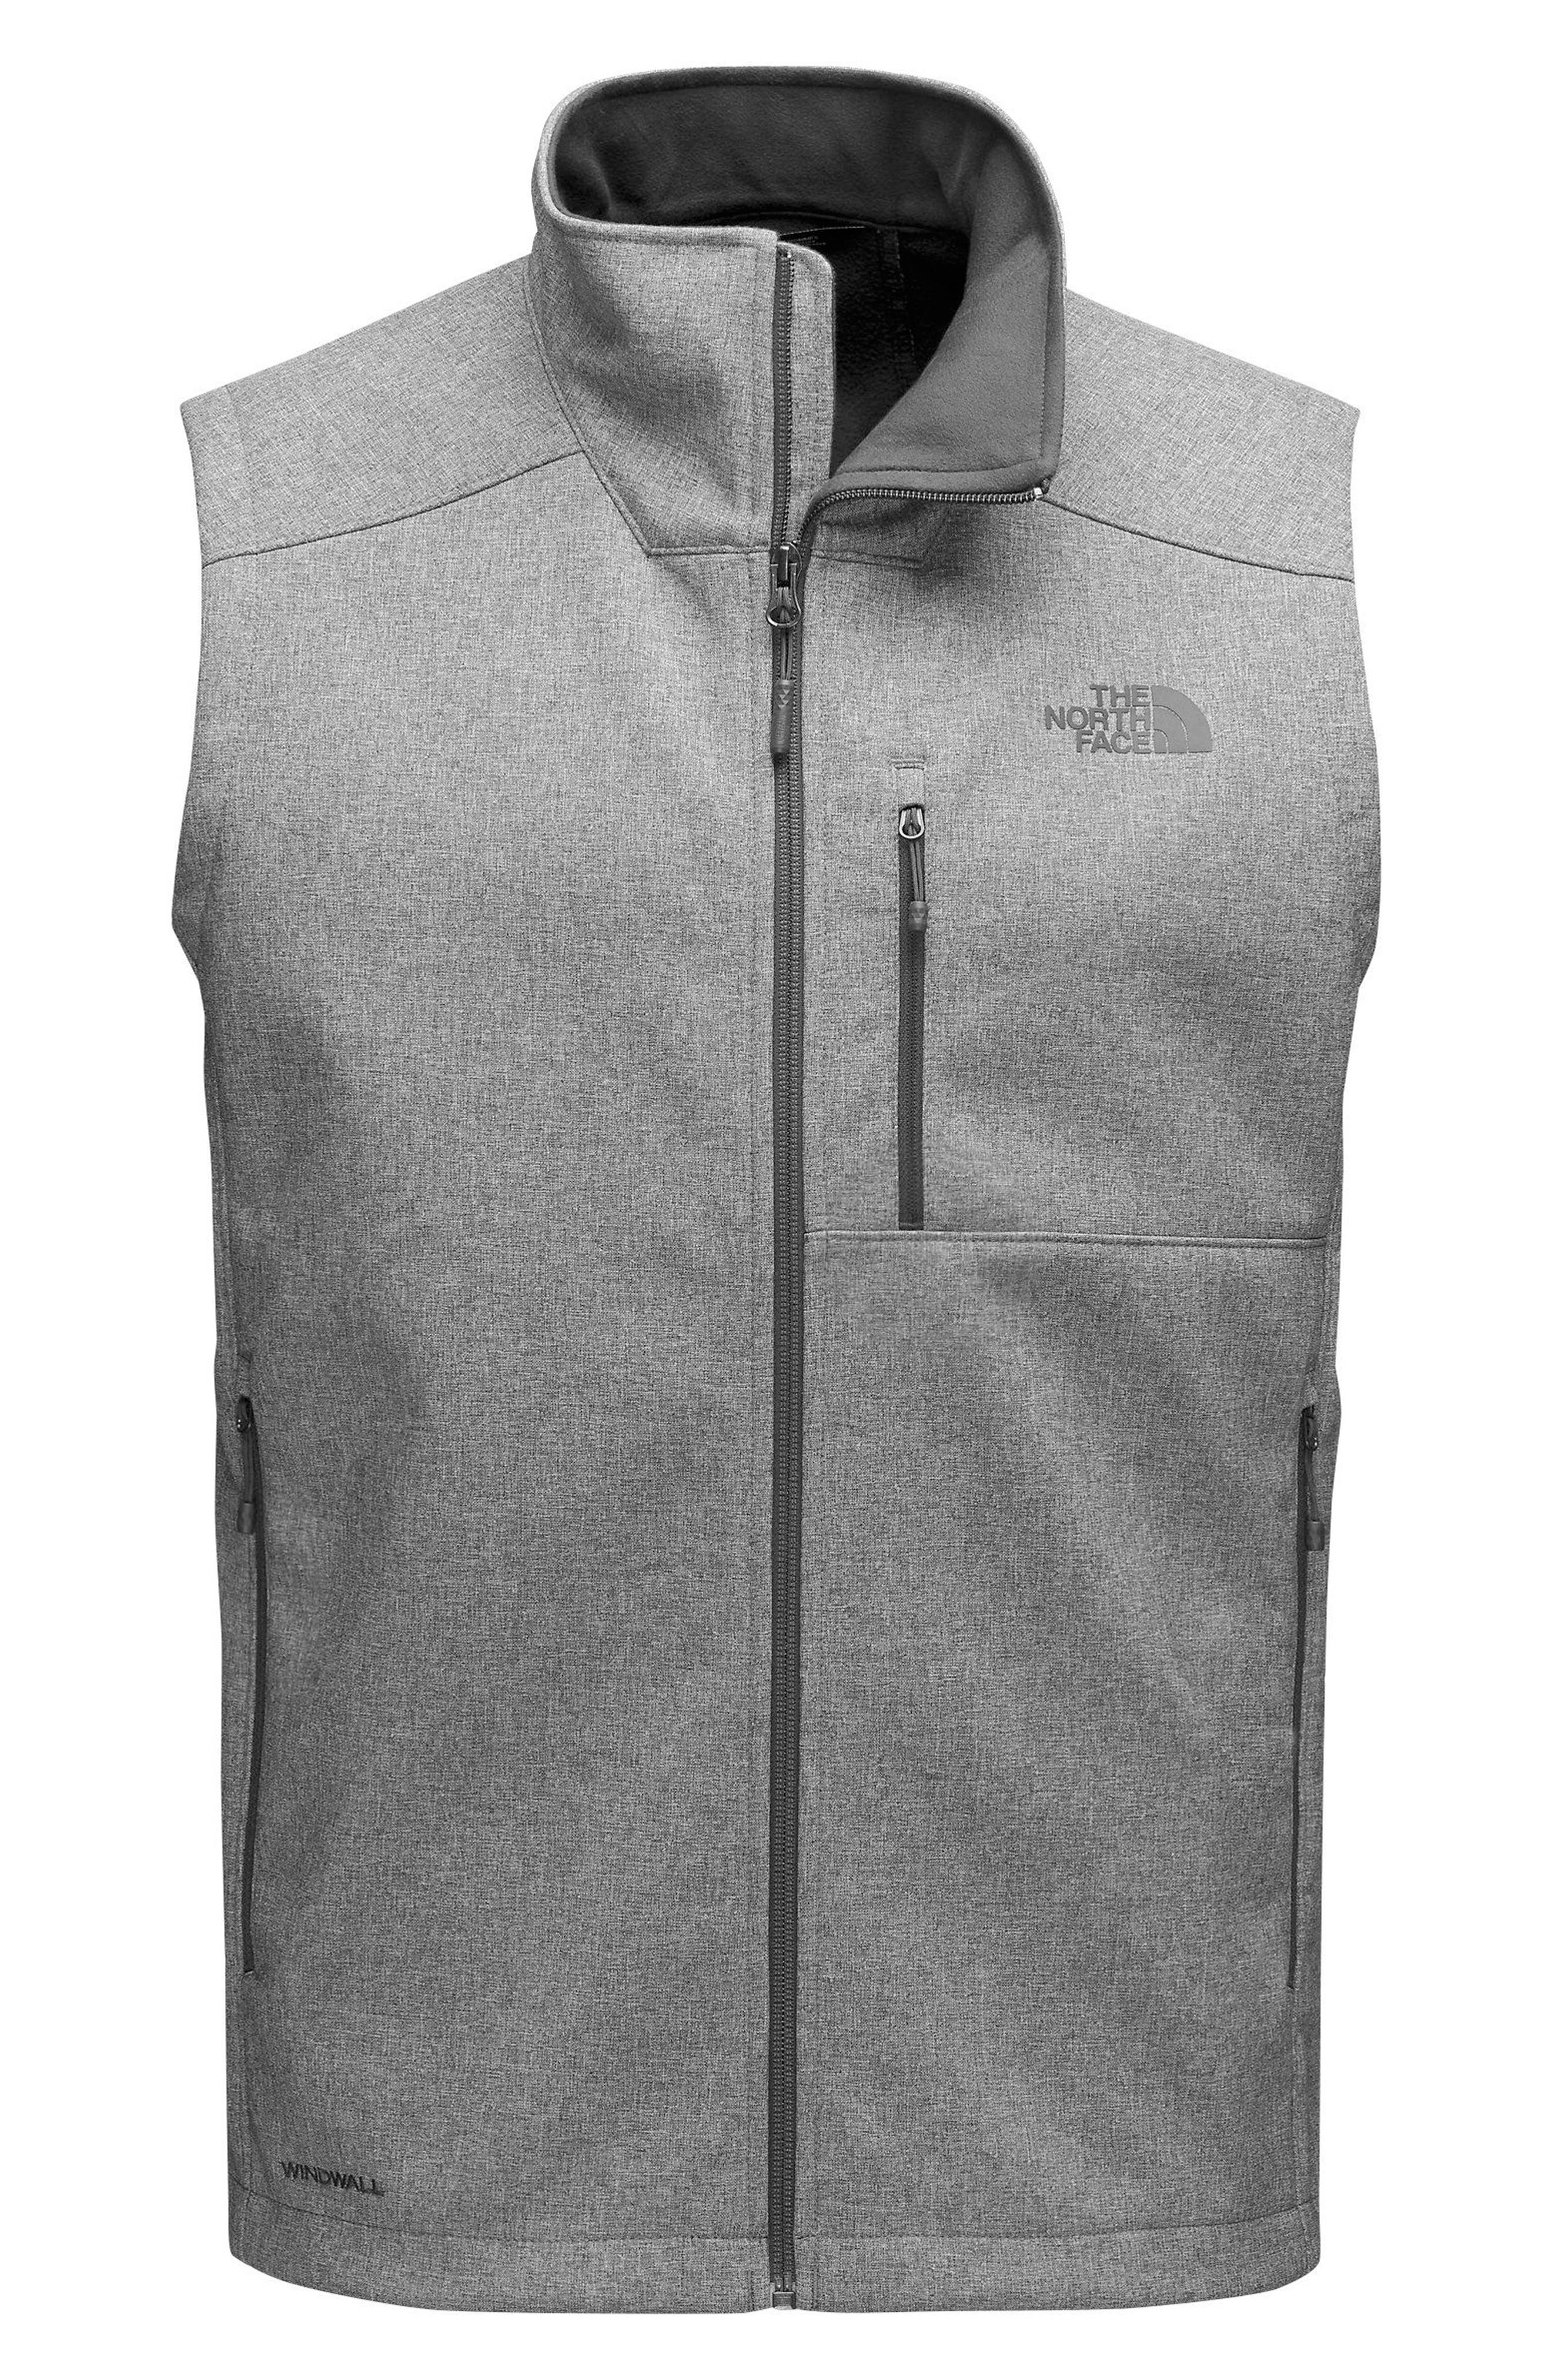 Main Image - The North Face Apex Bionic 2 Vest